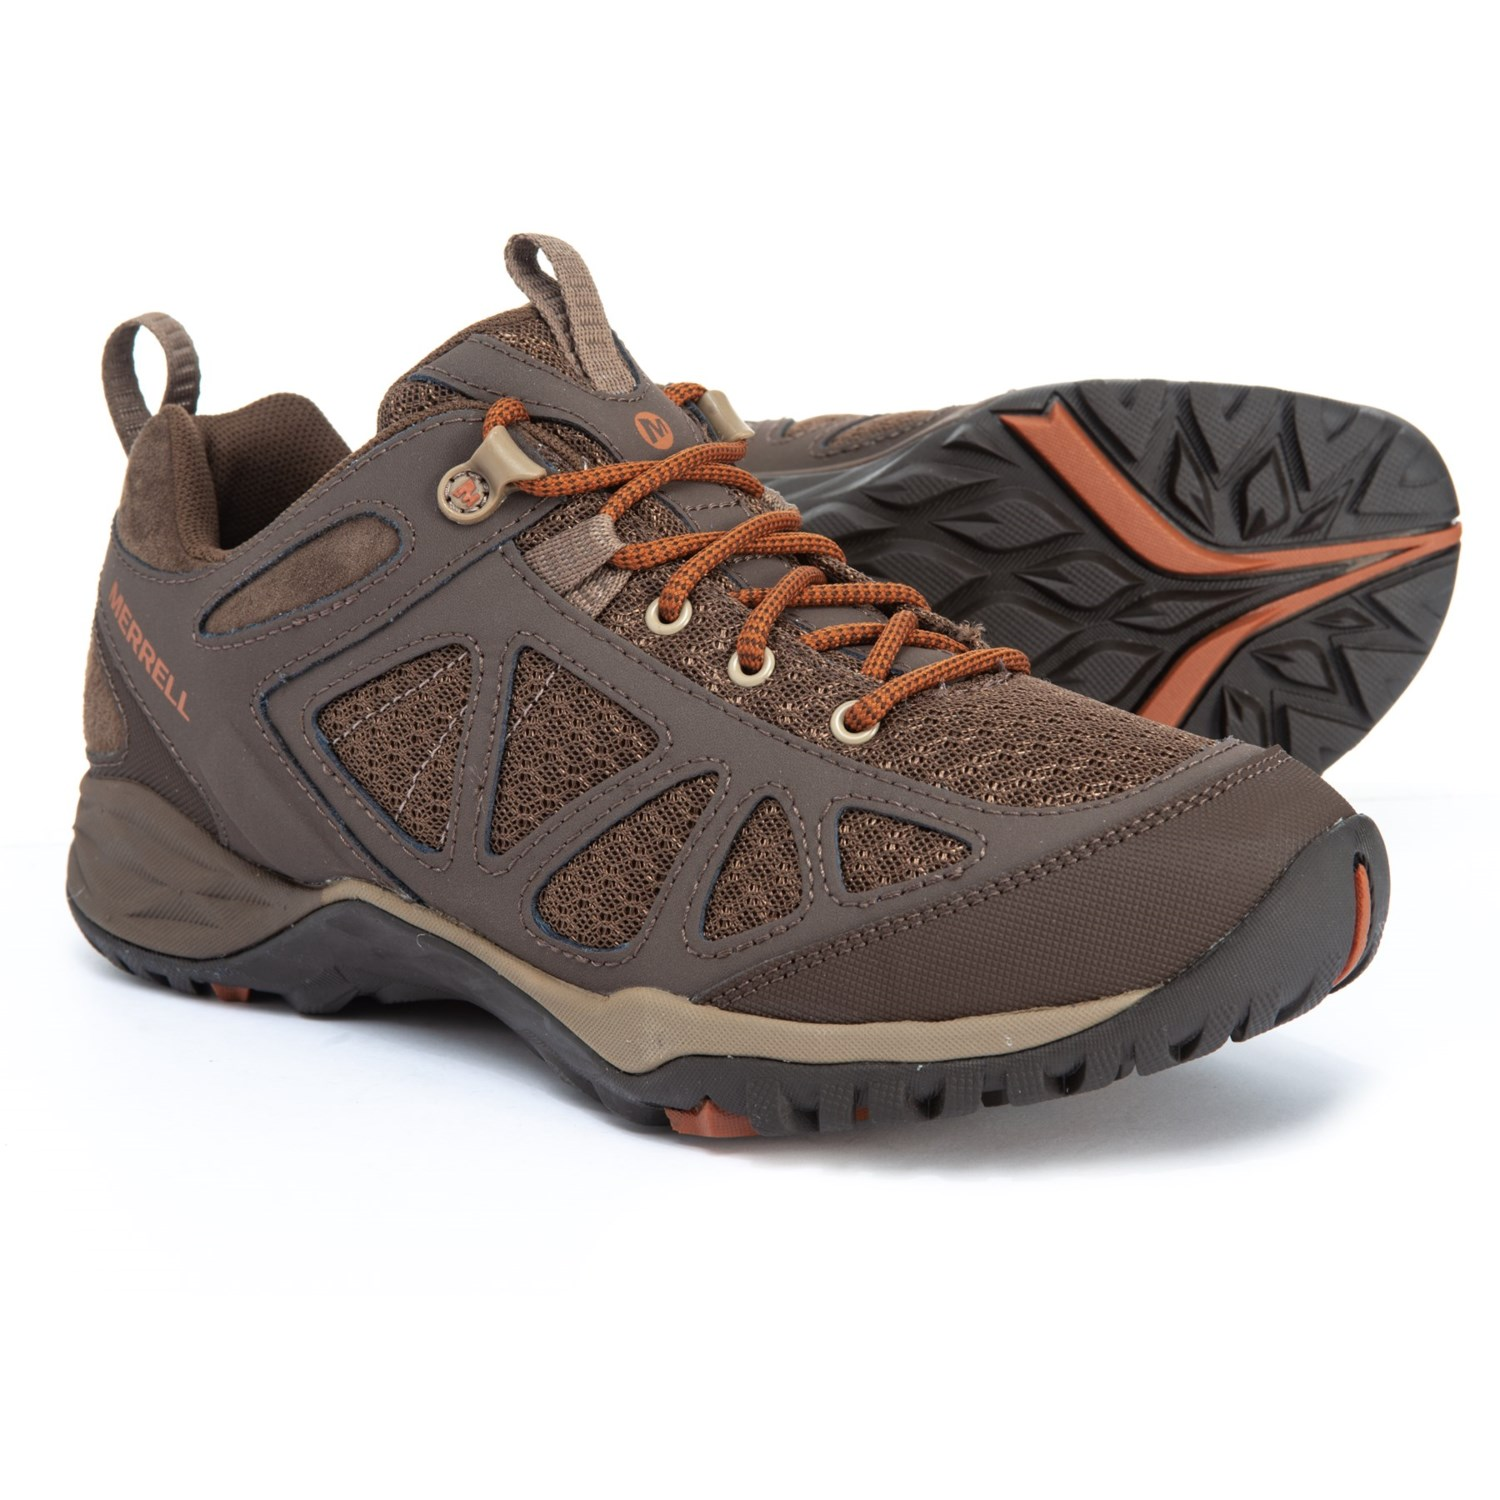 eca03052cfe3 Merrell Siren Sport Q2 Hiking Shoes (For Women) - Save 20%